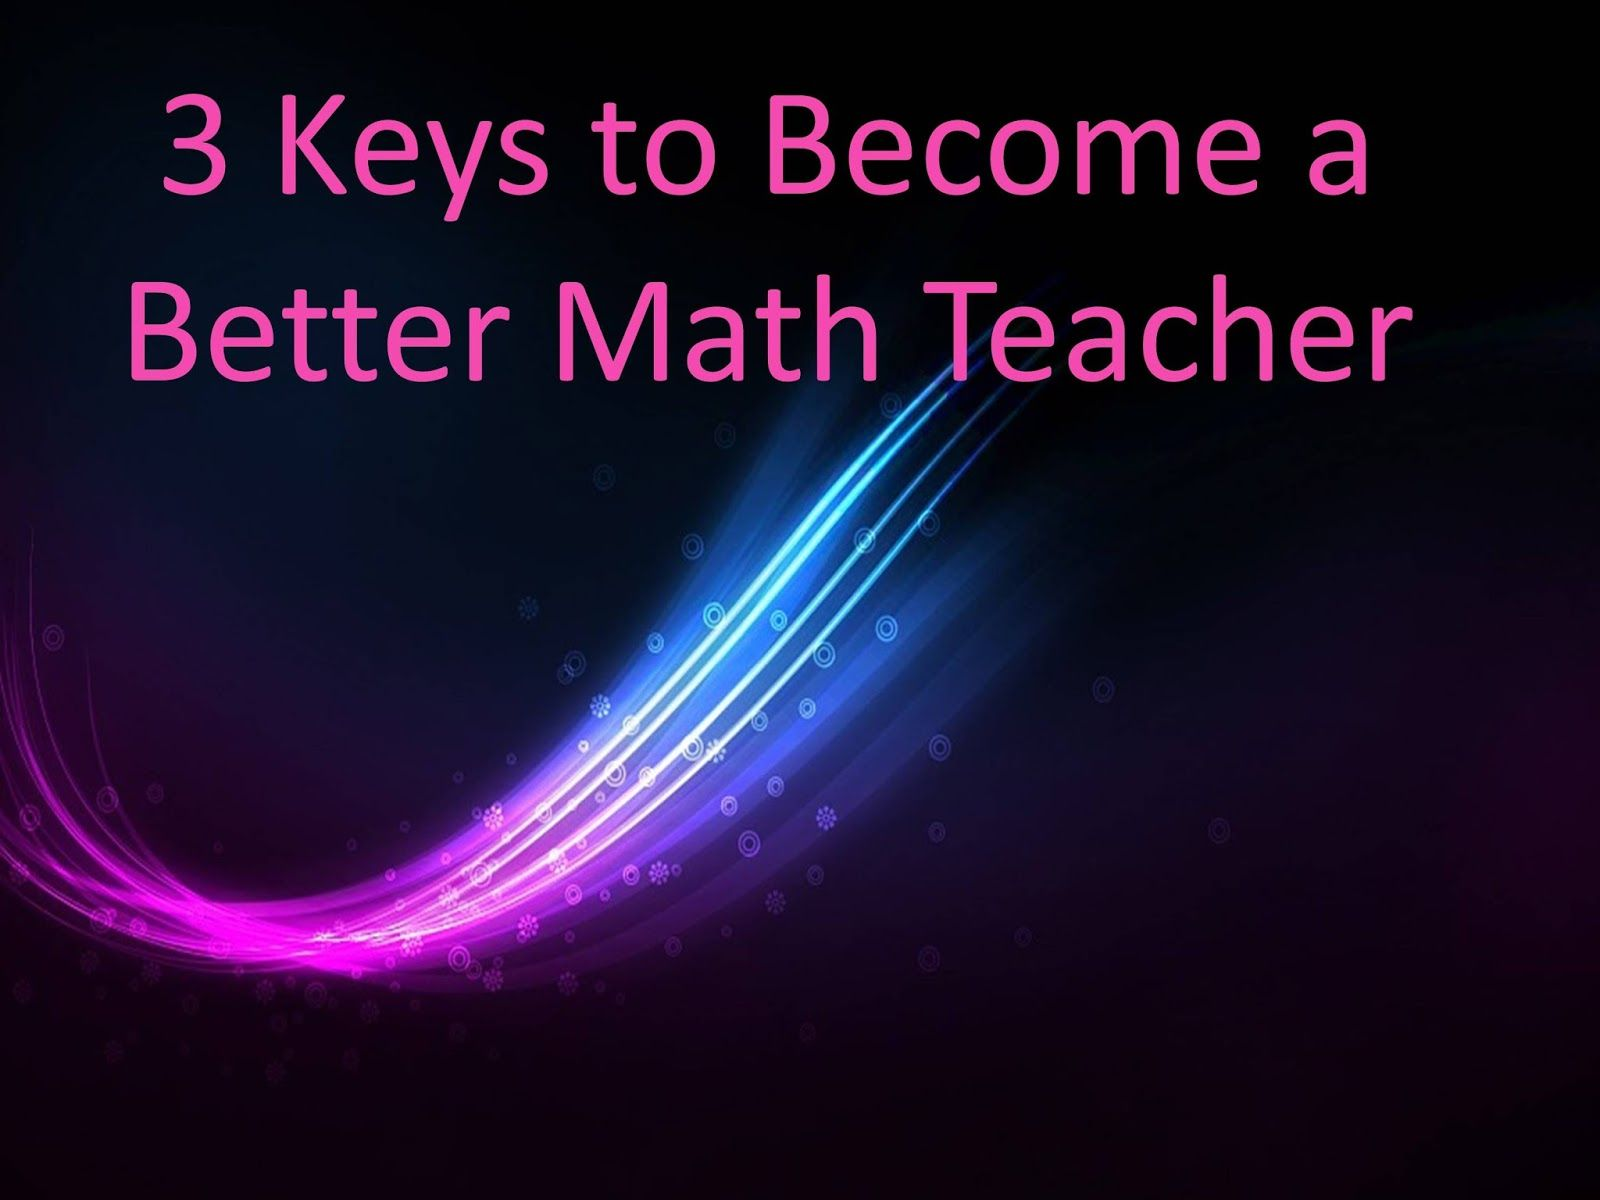 3 Keys To Become A Better Math Teacher